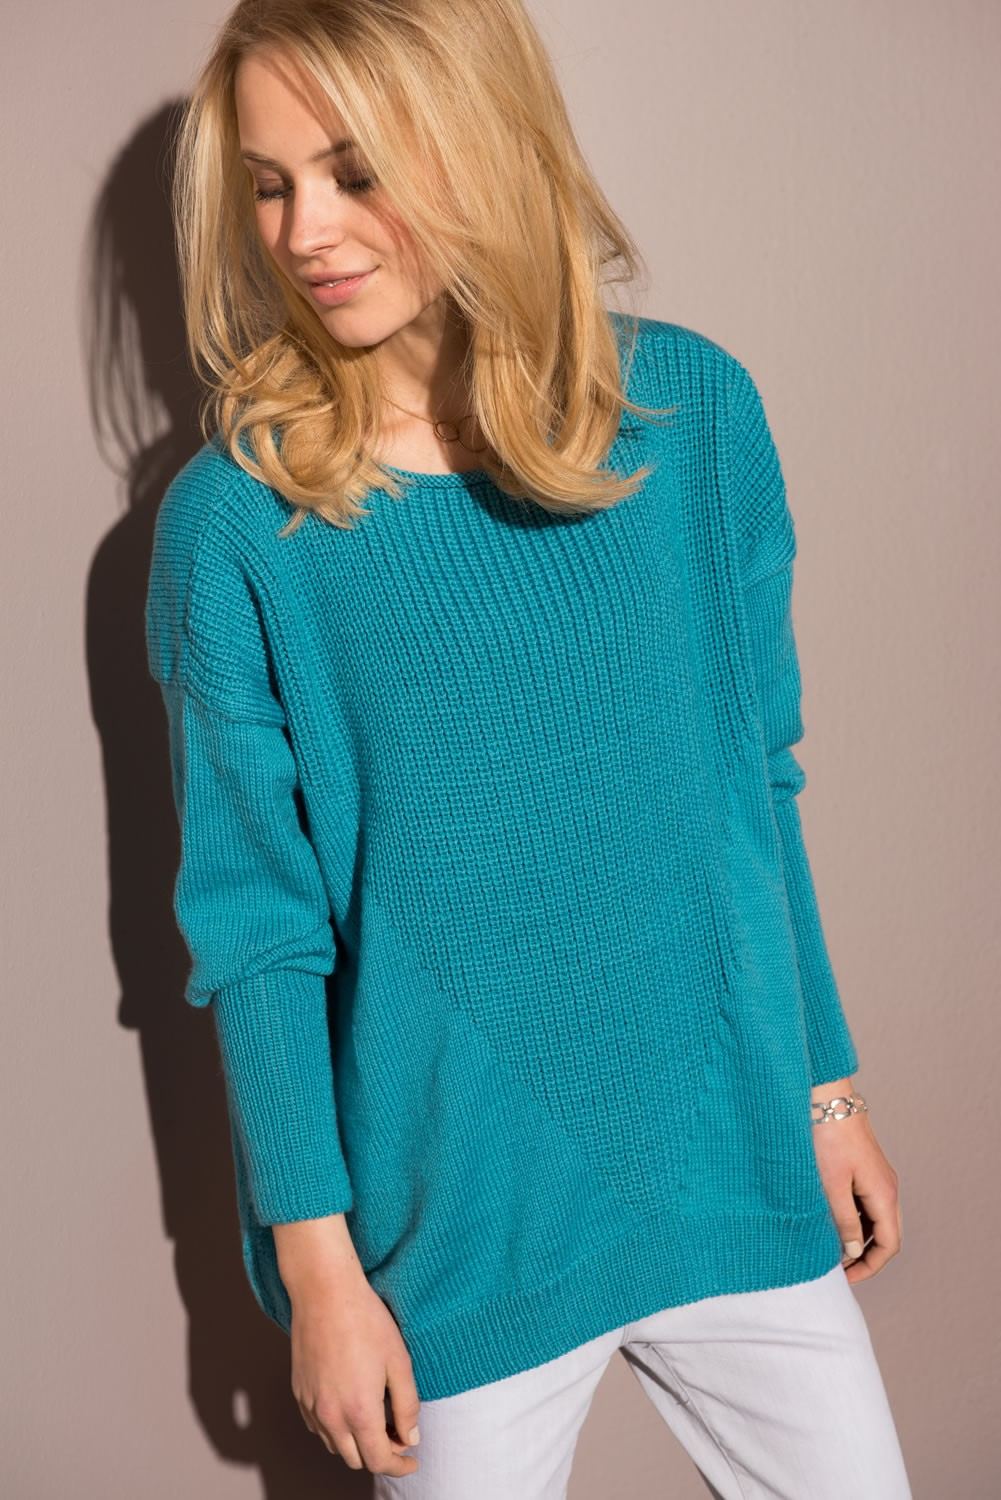 Lana Grossa PULLOVER in Cool Wool Cashmere